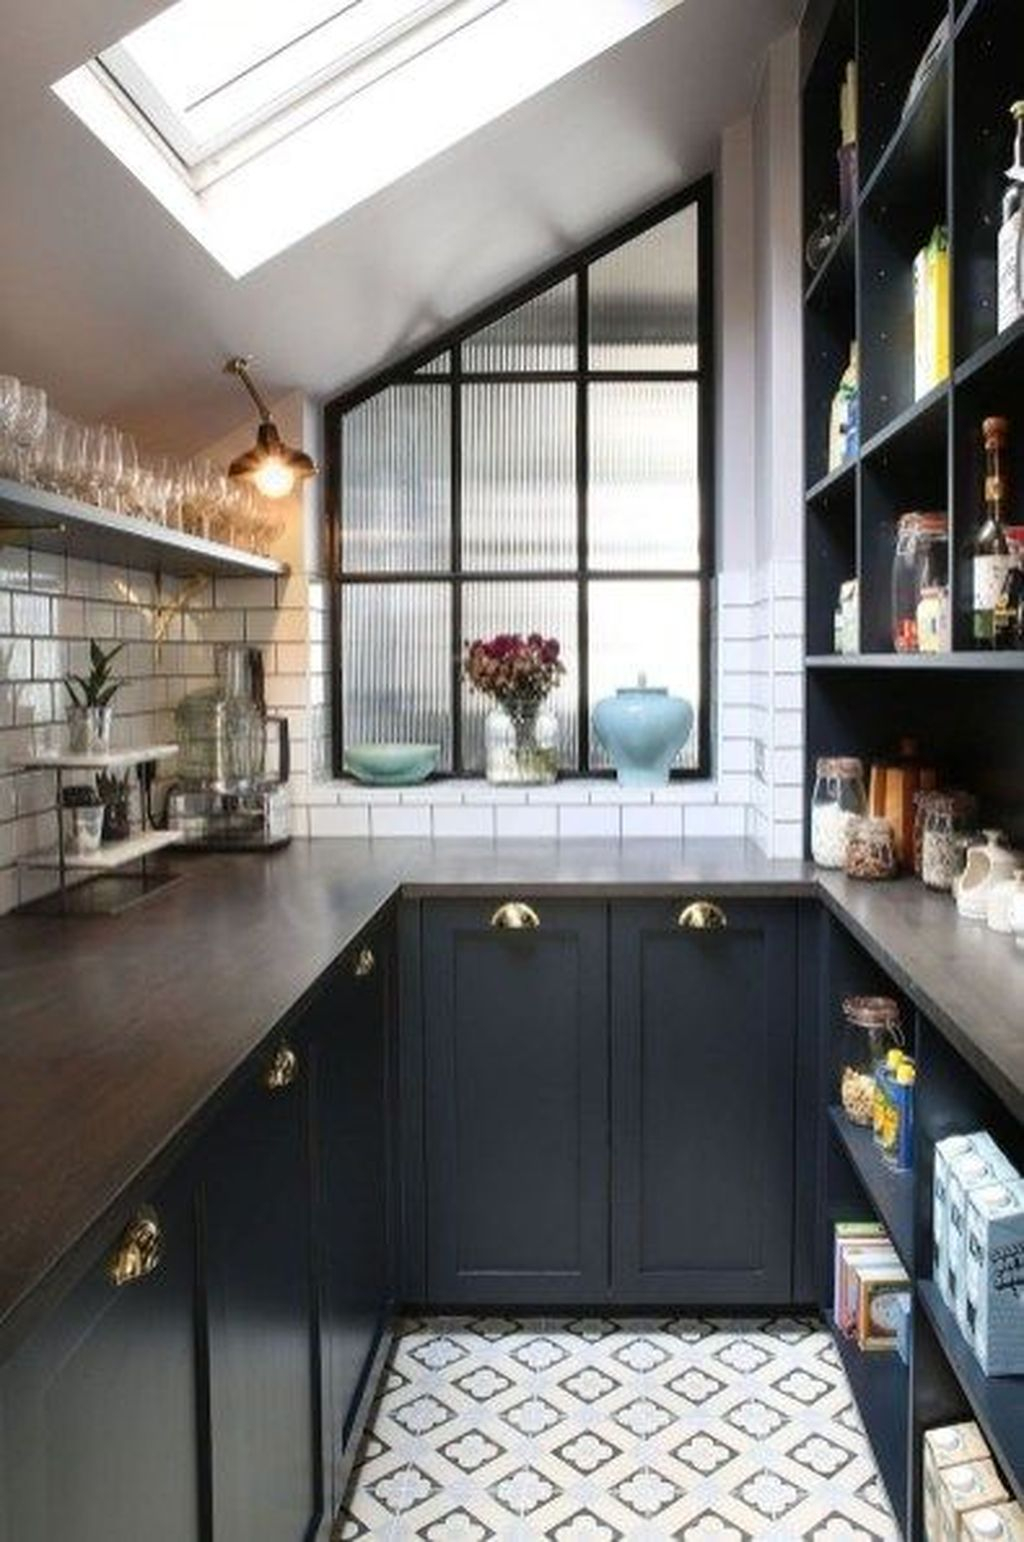 Best Tiny Kitchen Design Ideas For Your Small Space Inspiration 09